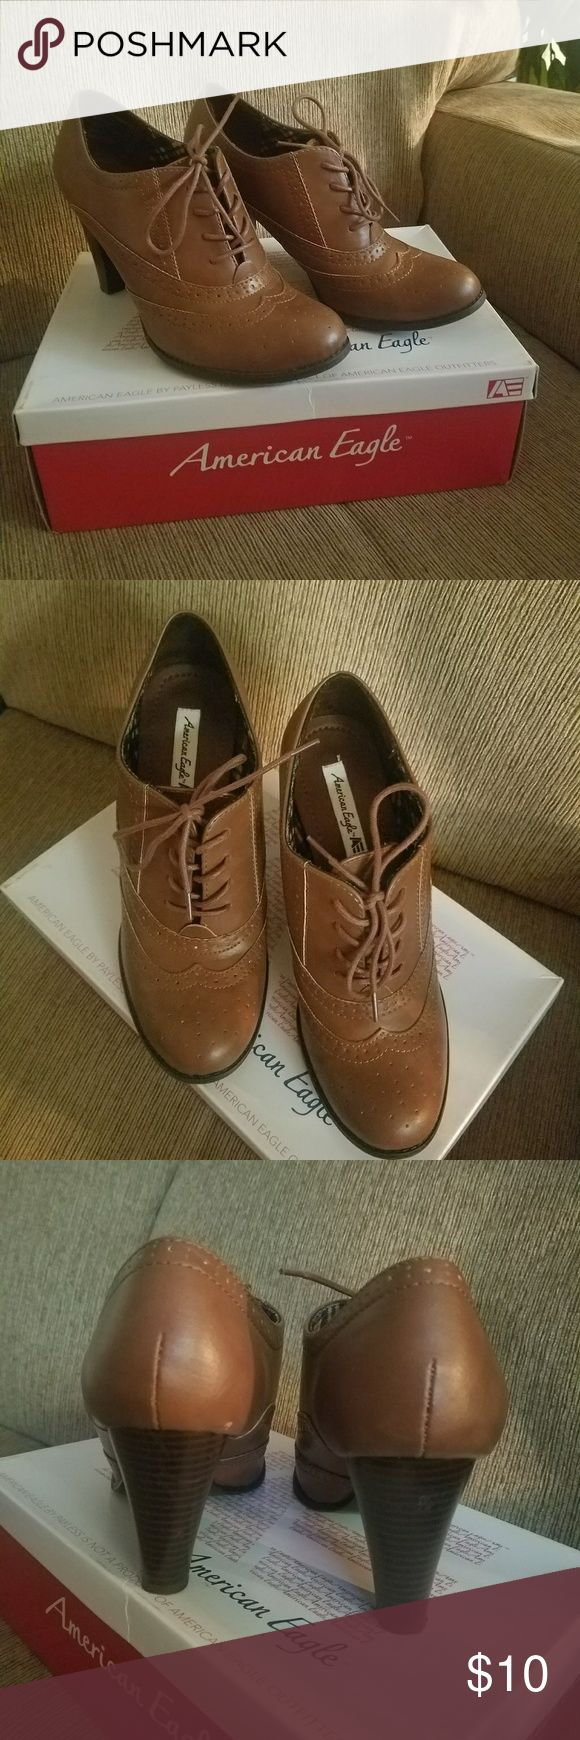 American Eagle Wingtip Heals Beautiful Cognac colored men shoe inspired Wingtip healed loafers. EUC worn once. American Eagle By Payless Shoes Heels